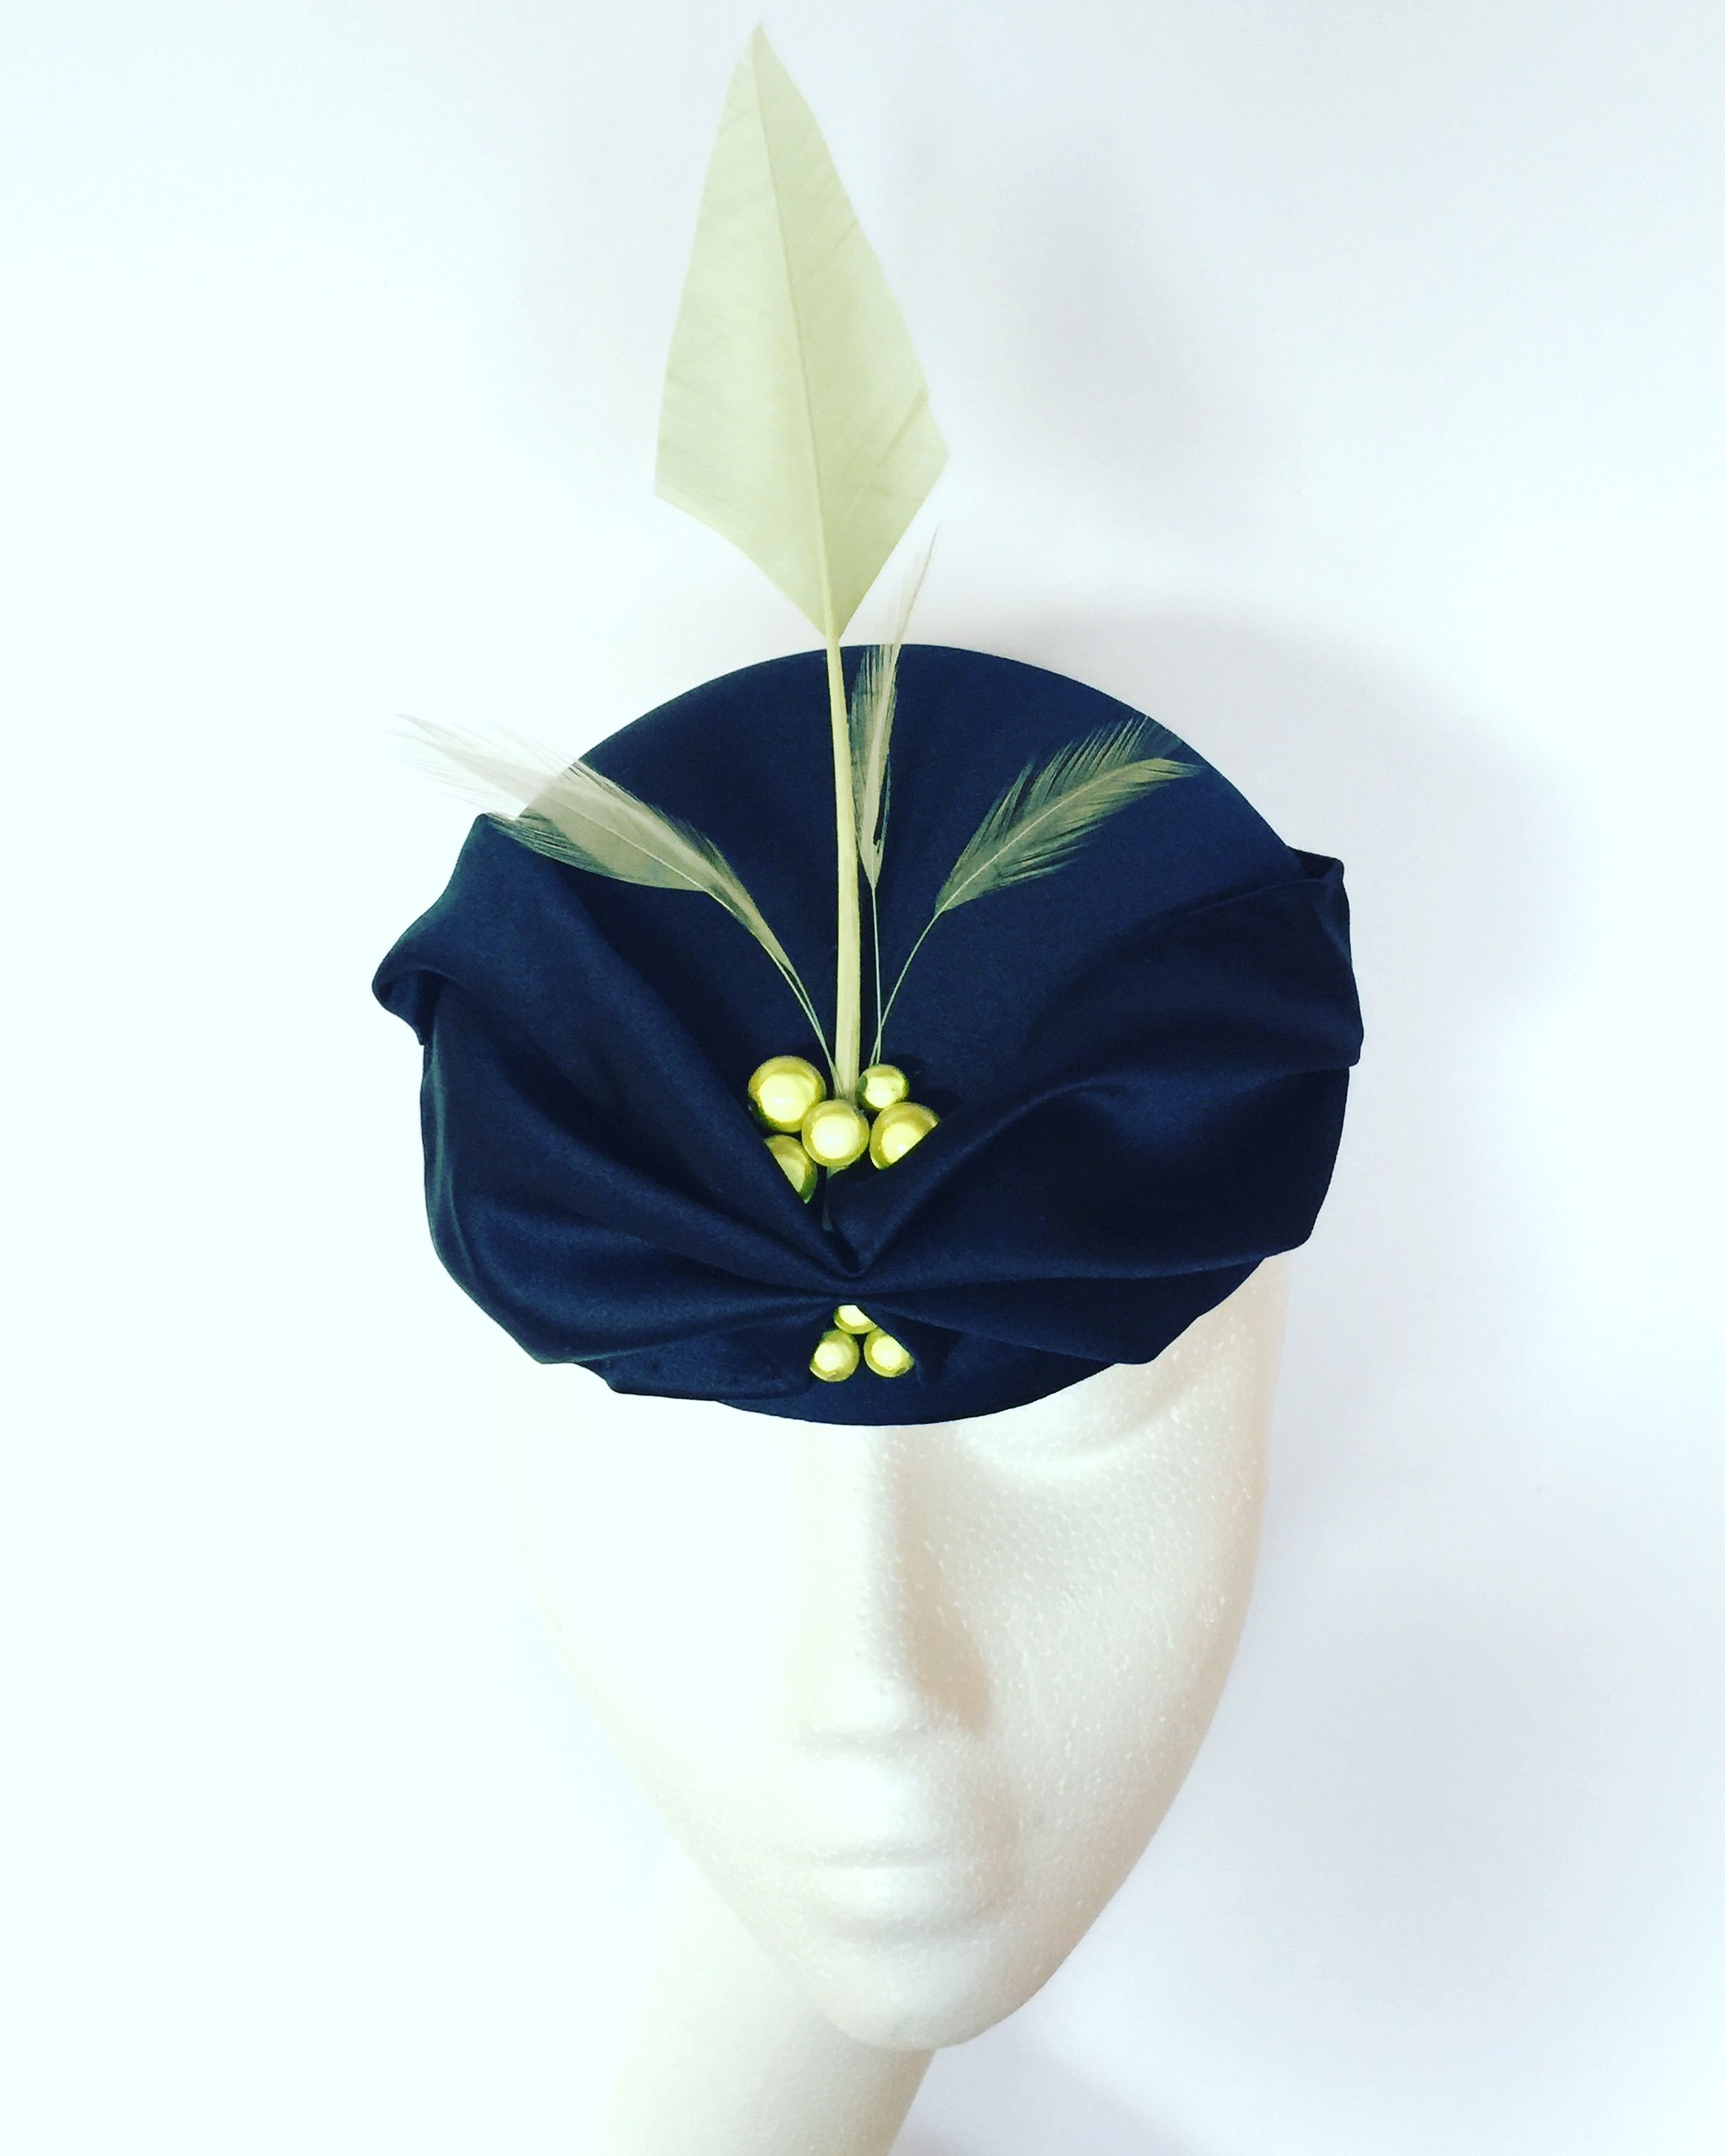 Navy base with draped fabric, lime green quill, feather and beading. Small hat perfect for a wedding guest or day at the races.